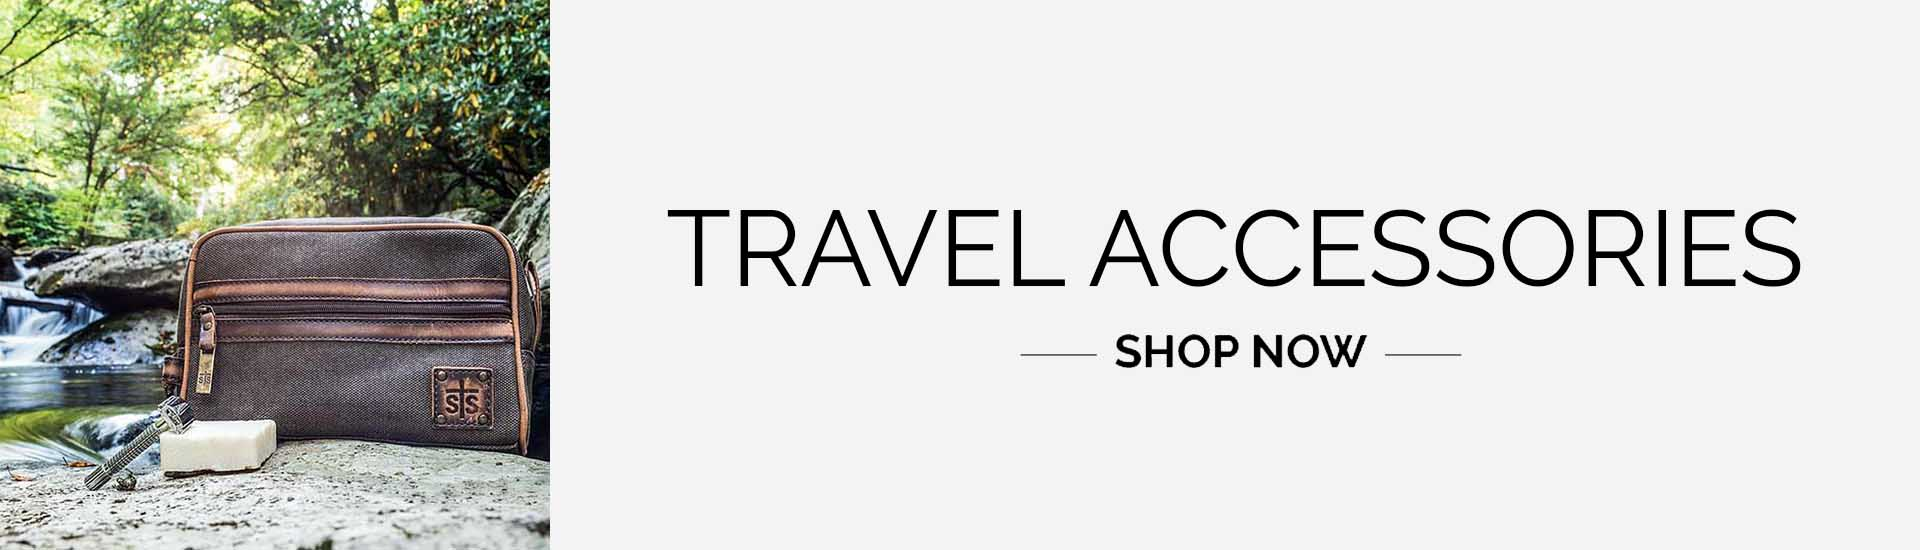 Travel Accessories Shop Now - STS Ranchwear